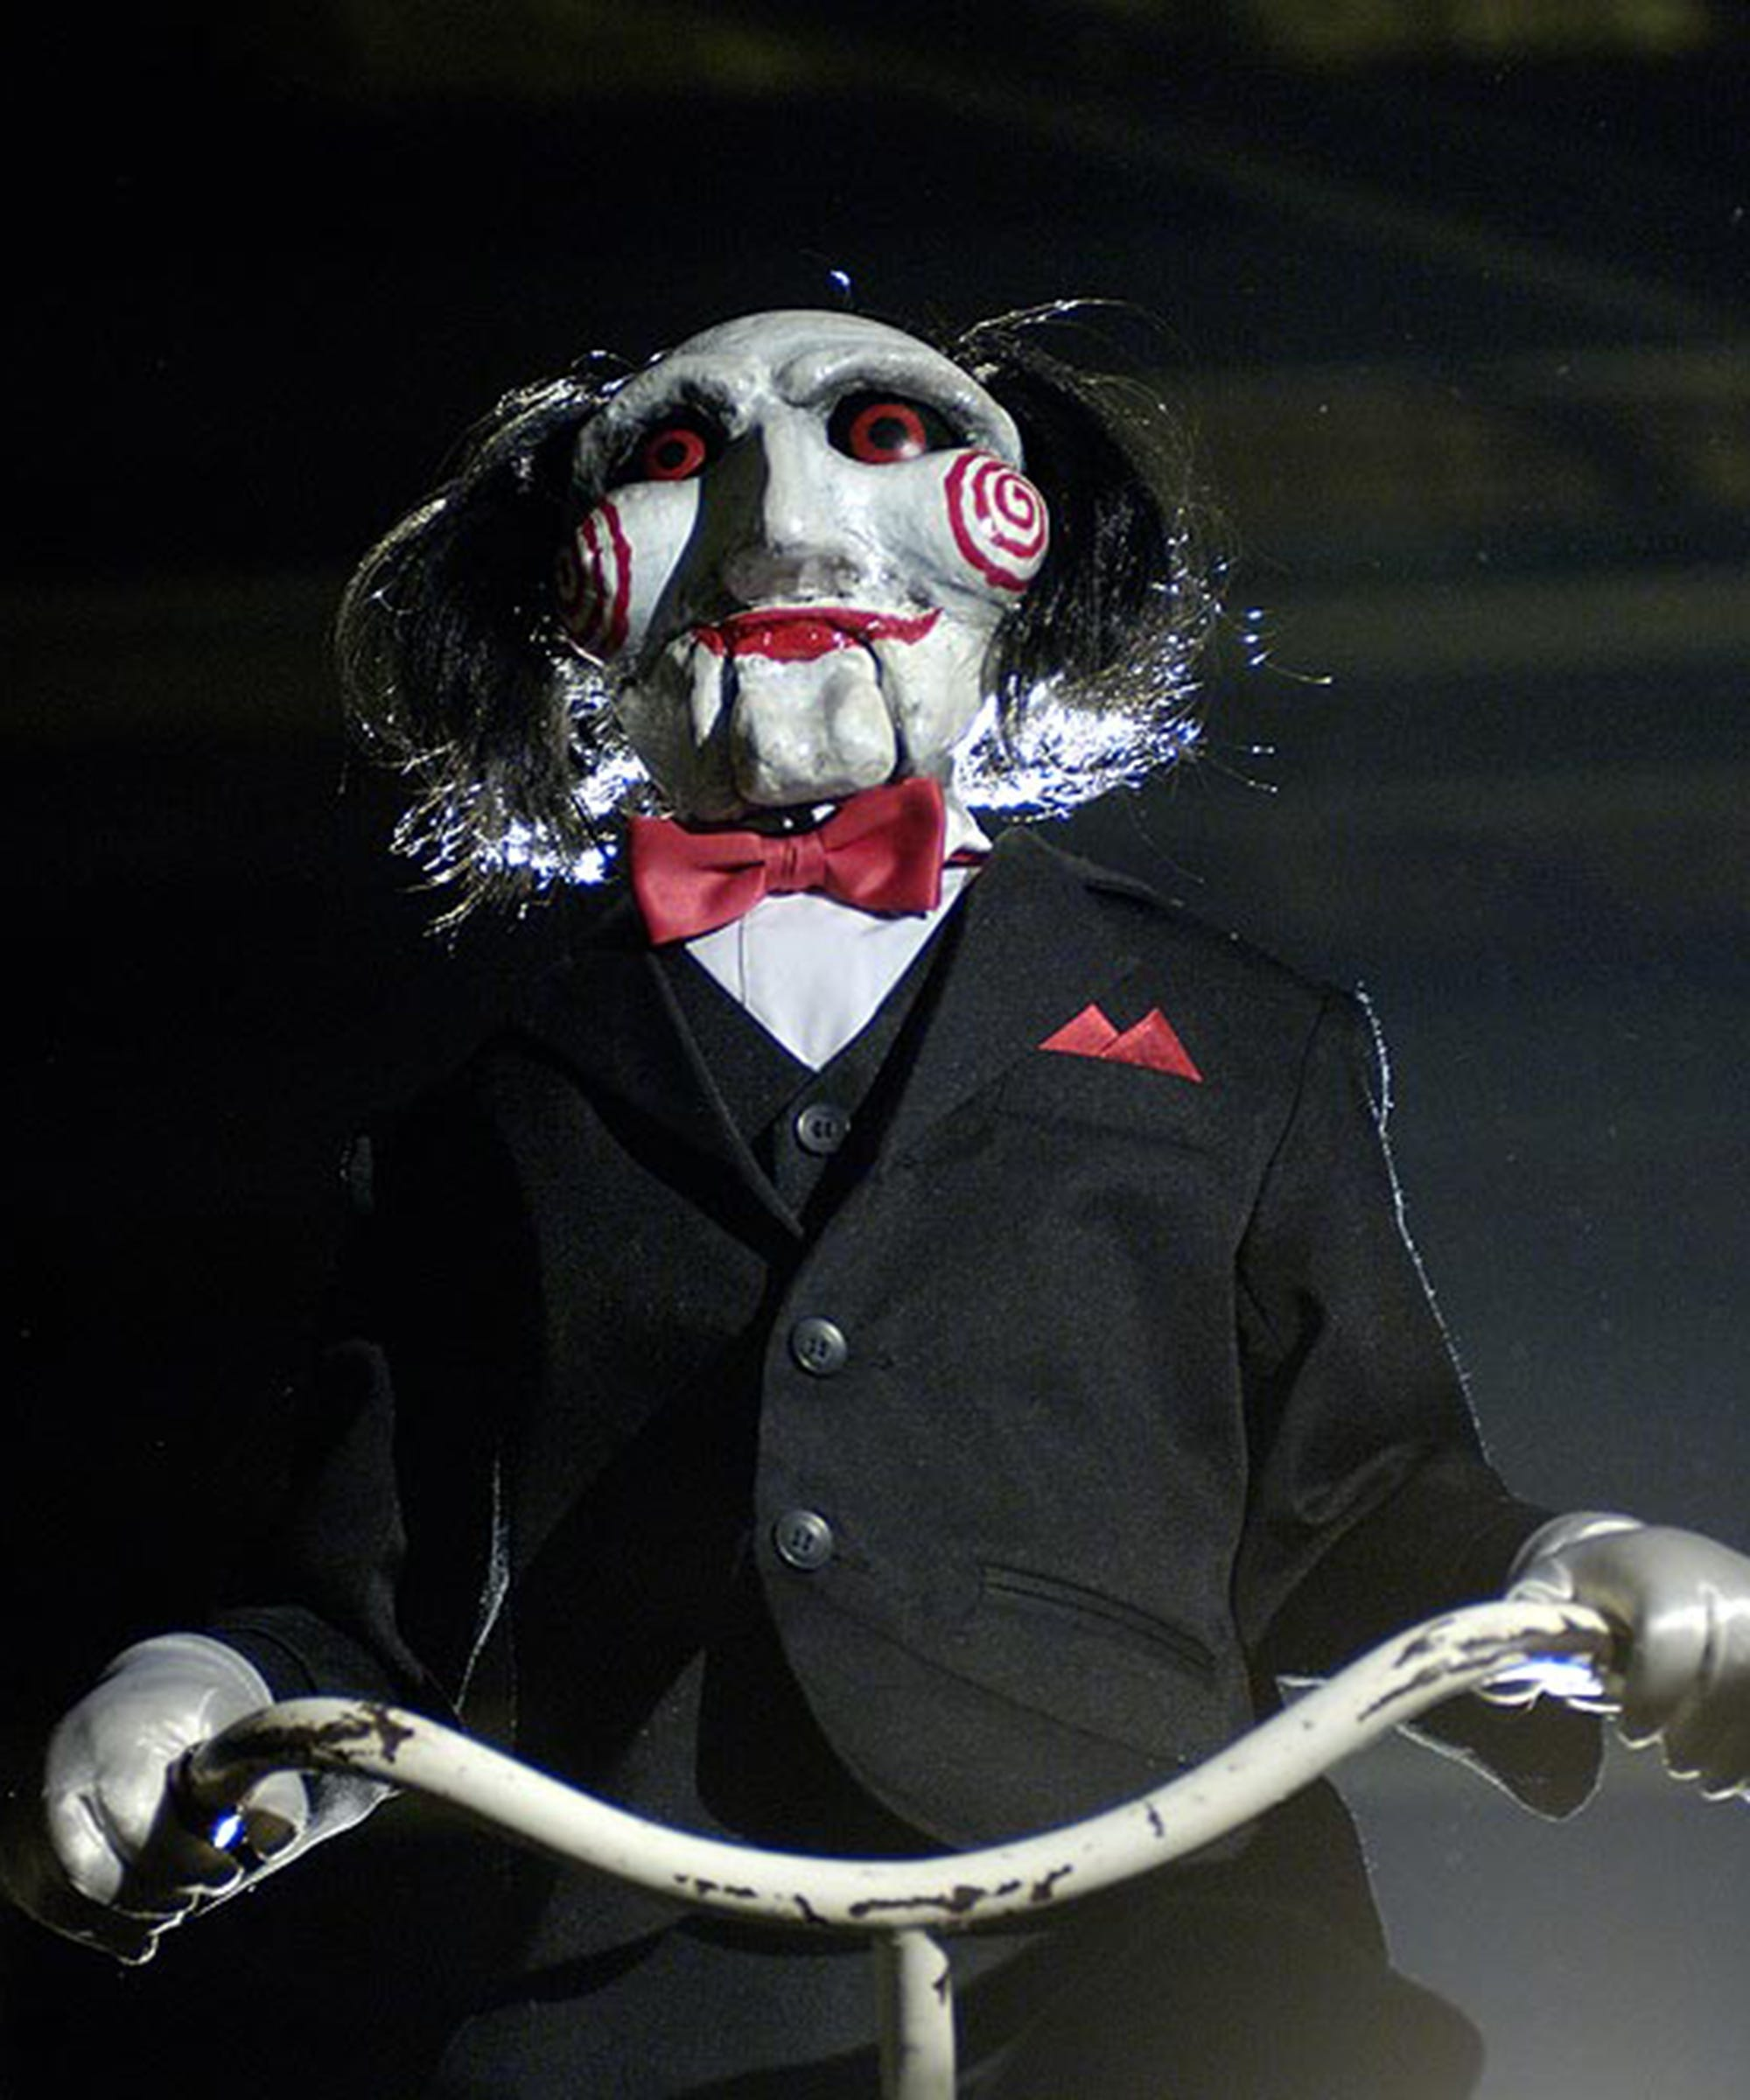 The Best Scary Halloween Costumes.Scary Halloween Costumes Inspired By Horror Movies 2018